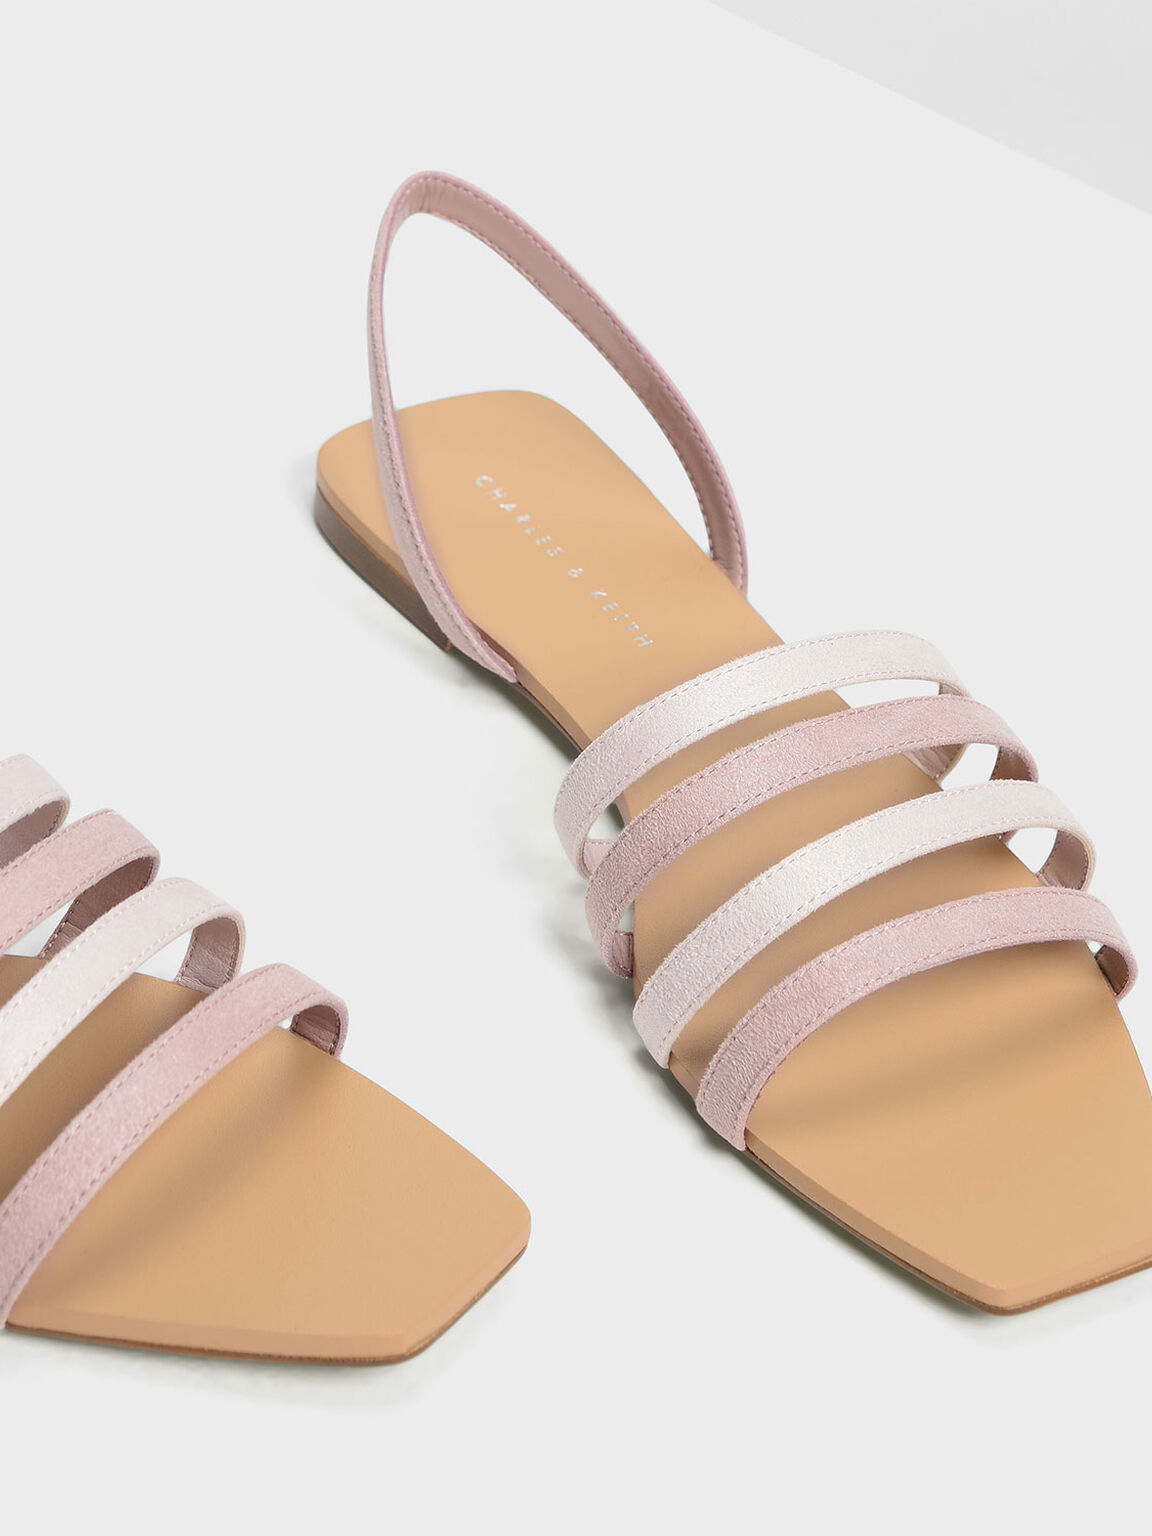 4-bar Sandals, Blush, hi-res